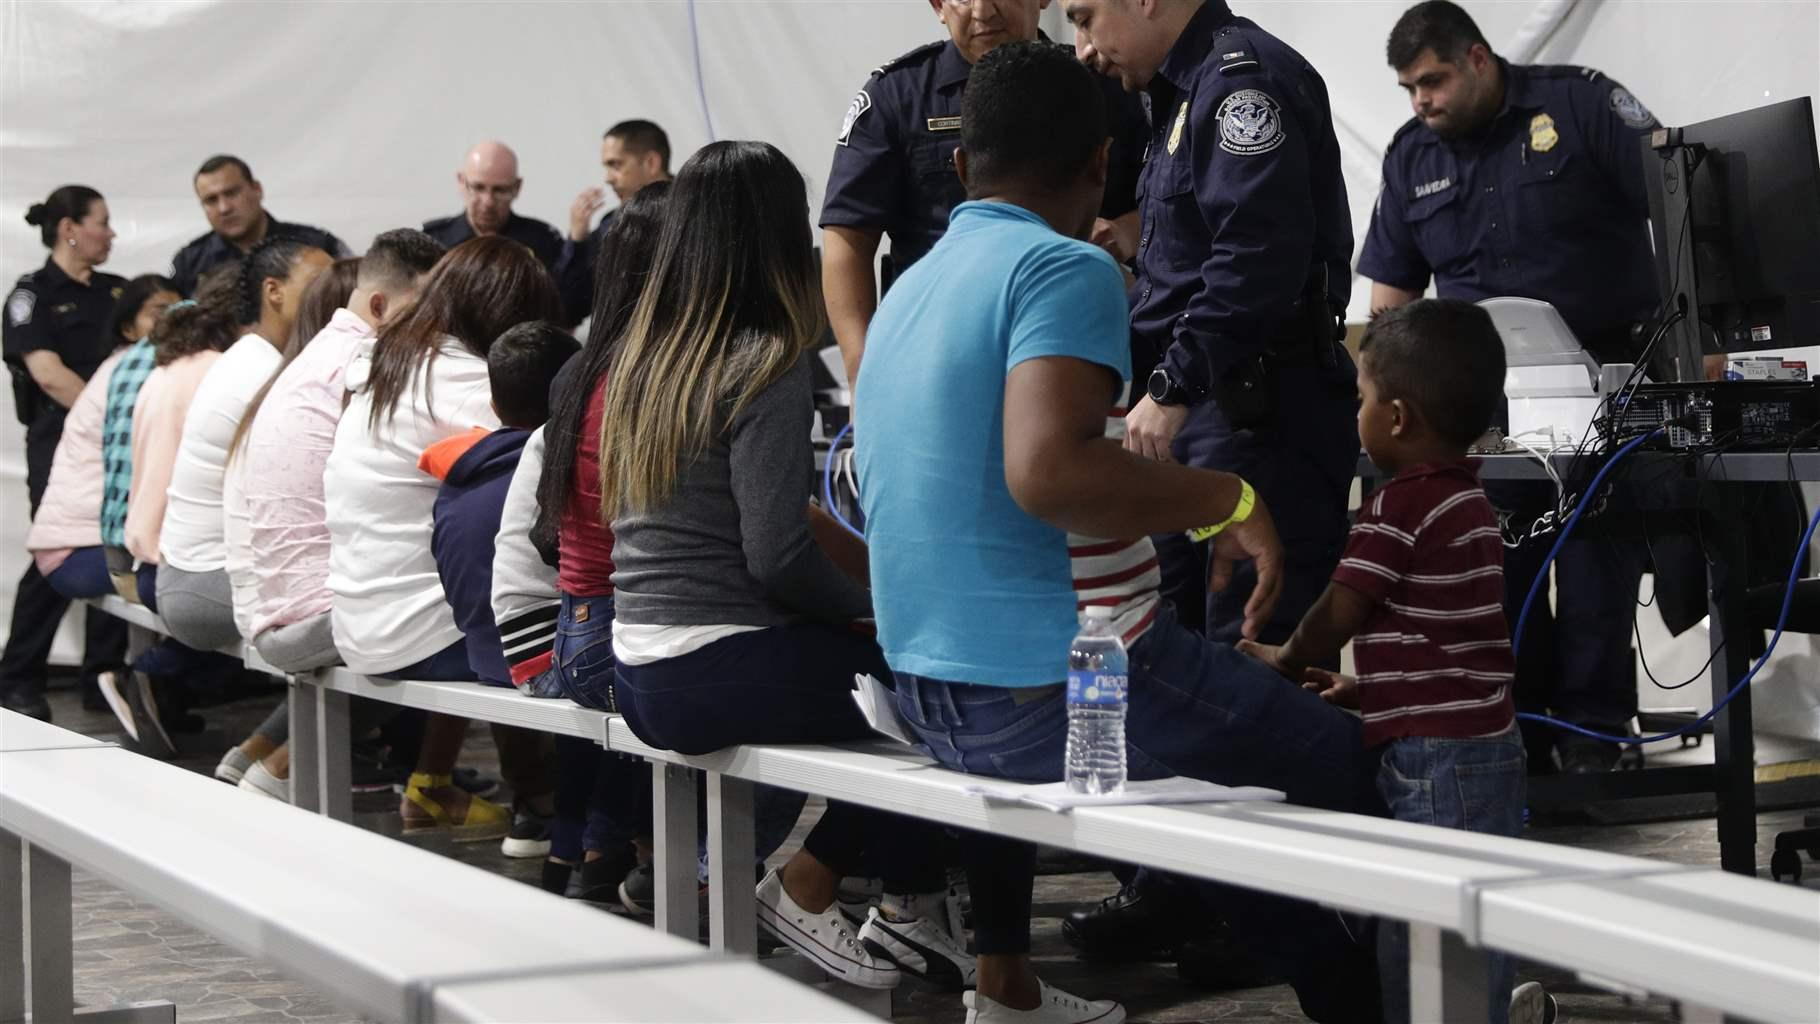 Migrants wait to apply for asylum